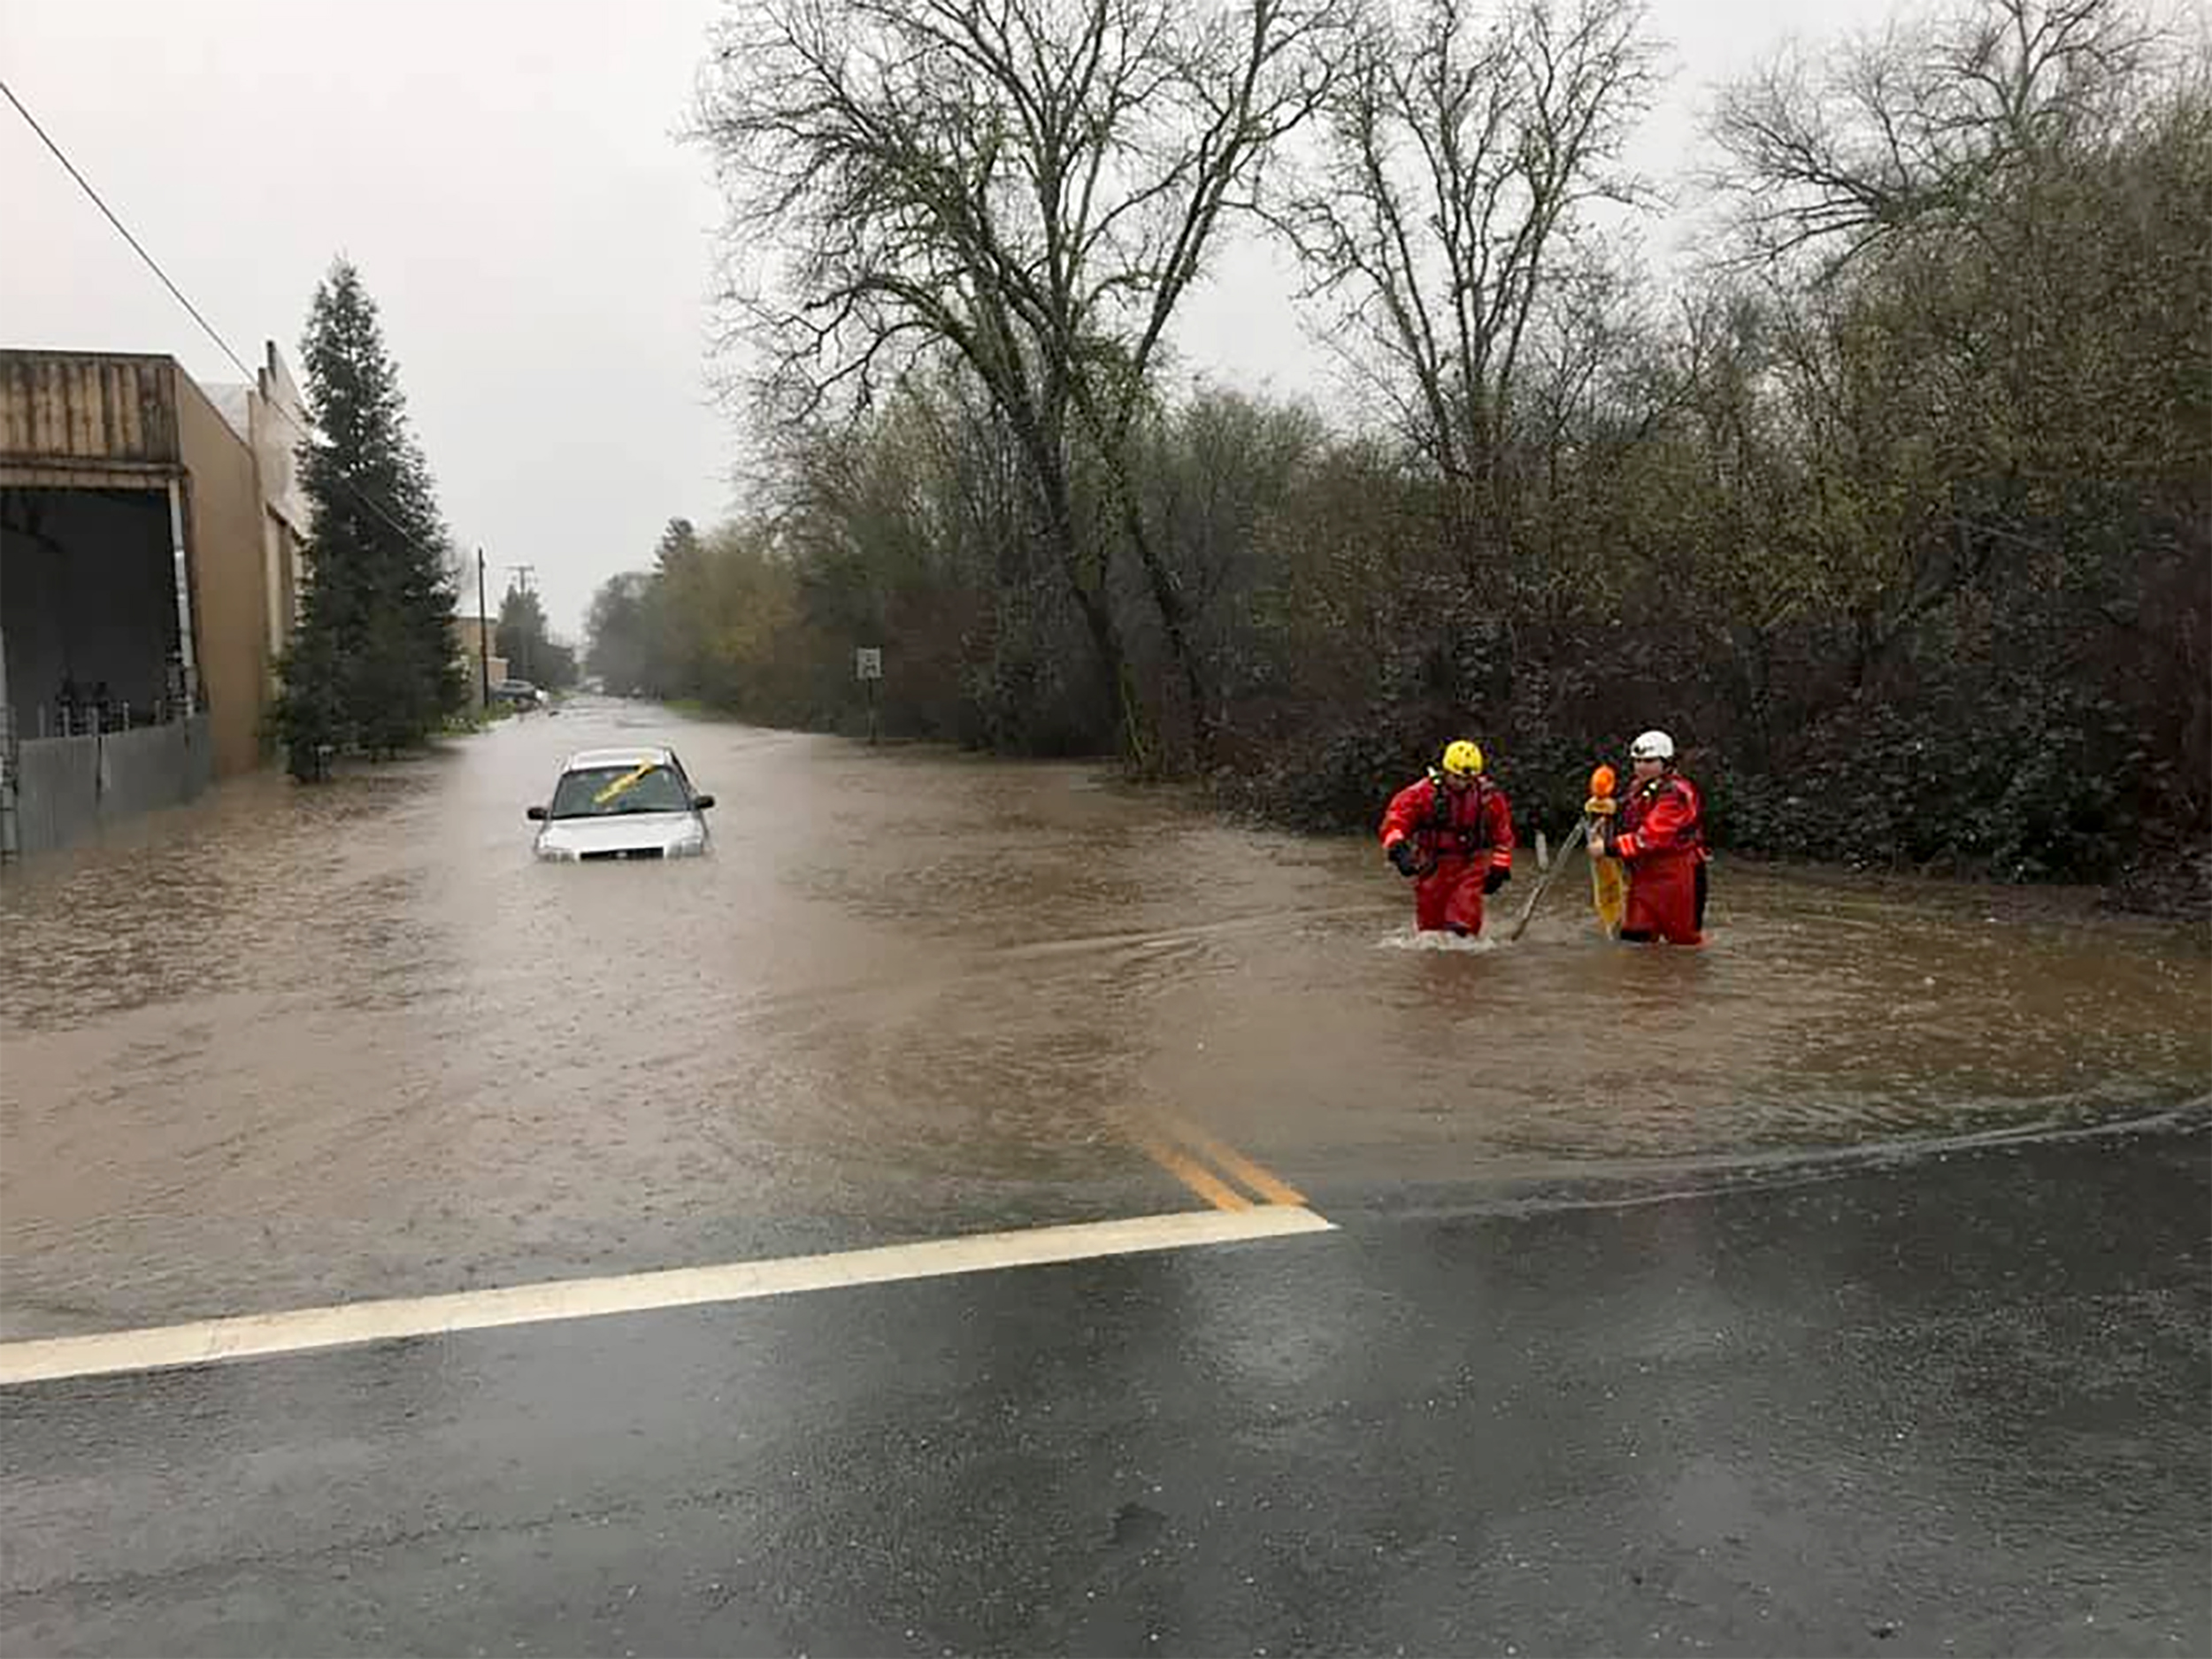 Emergency personnel wade through flood waters in Sonoma County on Feb. 26, 2019. (Photo courtesy of the Sonoma County Sheriff's Office)